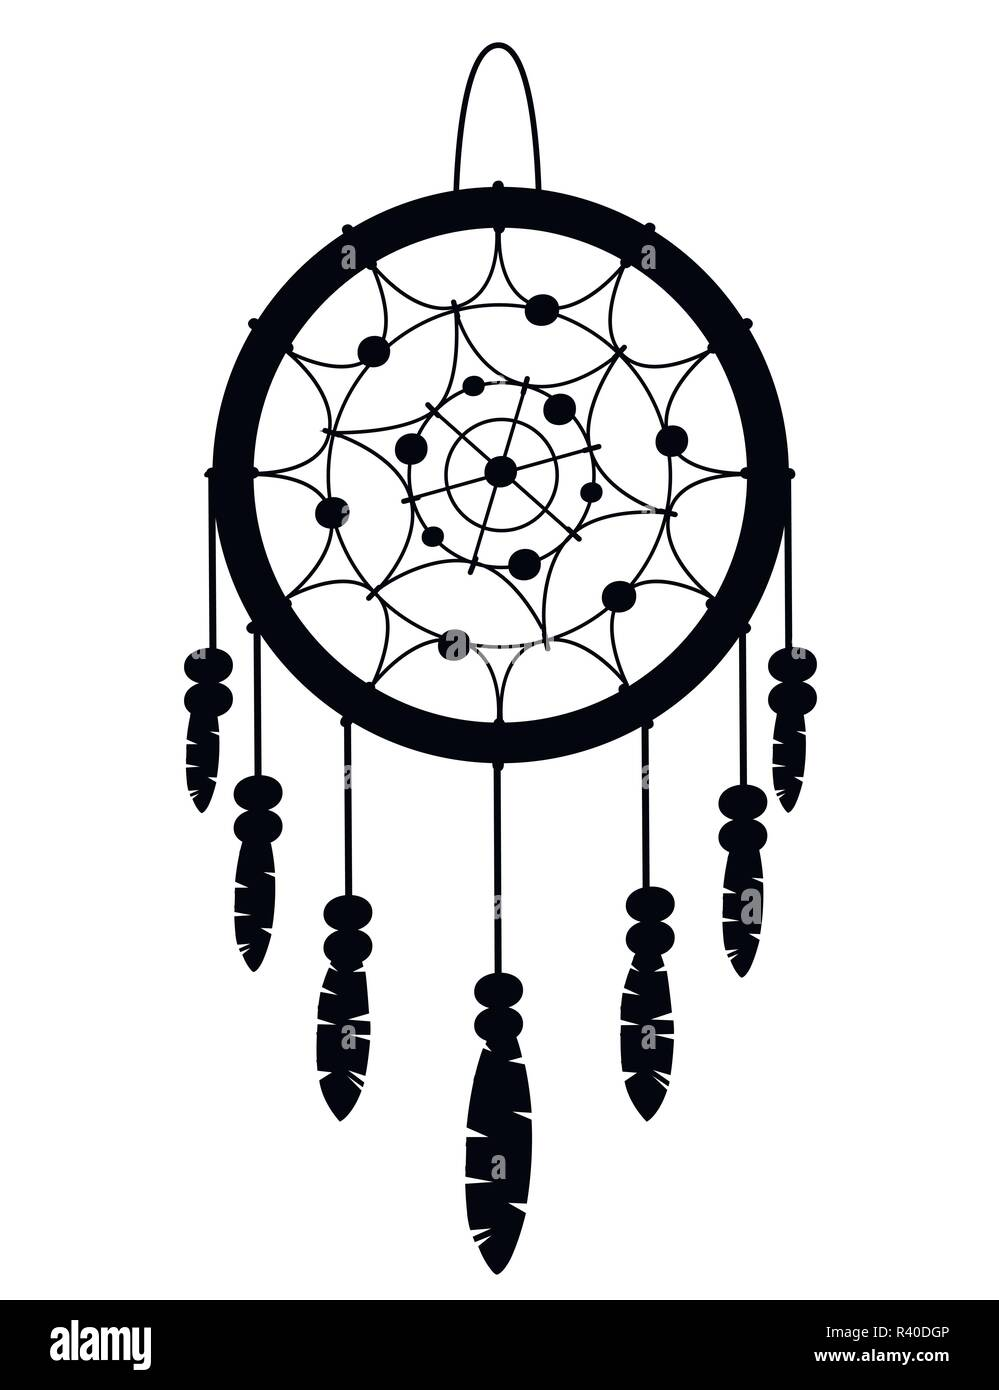 Black Silhouette Dreamcatcher Boho Native American Indian Talisman Tribal Design Magic Item With Feathers Fashionable Flat Style Talisman Vector Stock Vector Image Art Alamy,Easy Simple Easy Small Rangoli Designs For Diwali